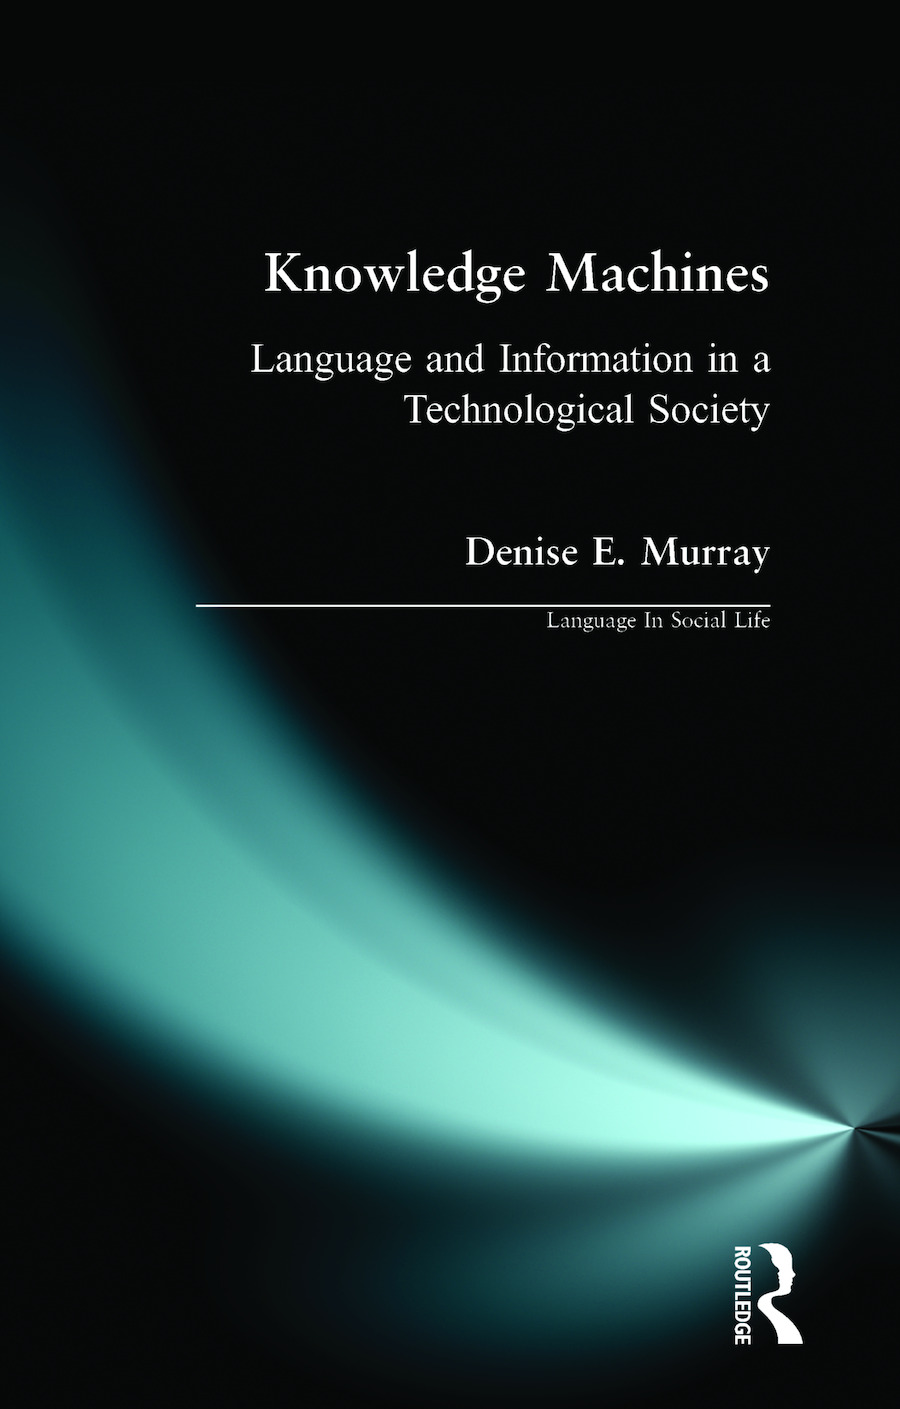 Knowledge Machines: Language and Information in a Technological Society book cover